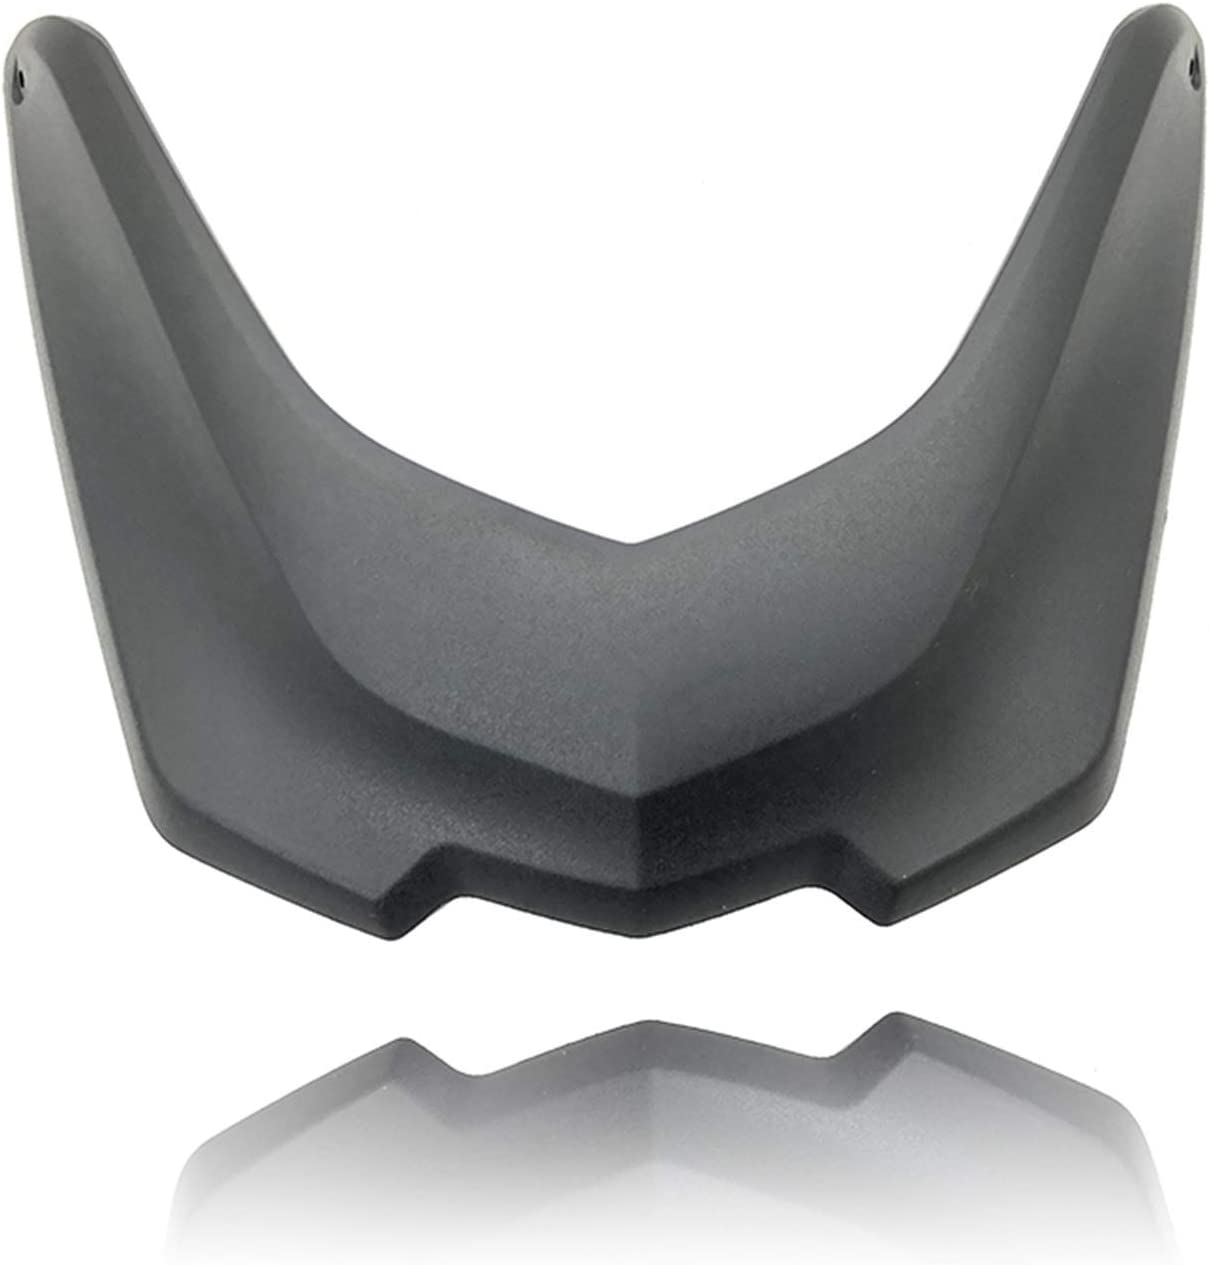 DANFENG R1200GS Front Beak Fender Cowl Easy-to-use Pro Wheel Cover Nippon regular agency Extension